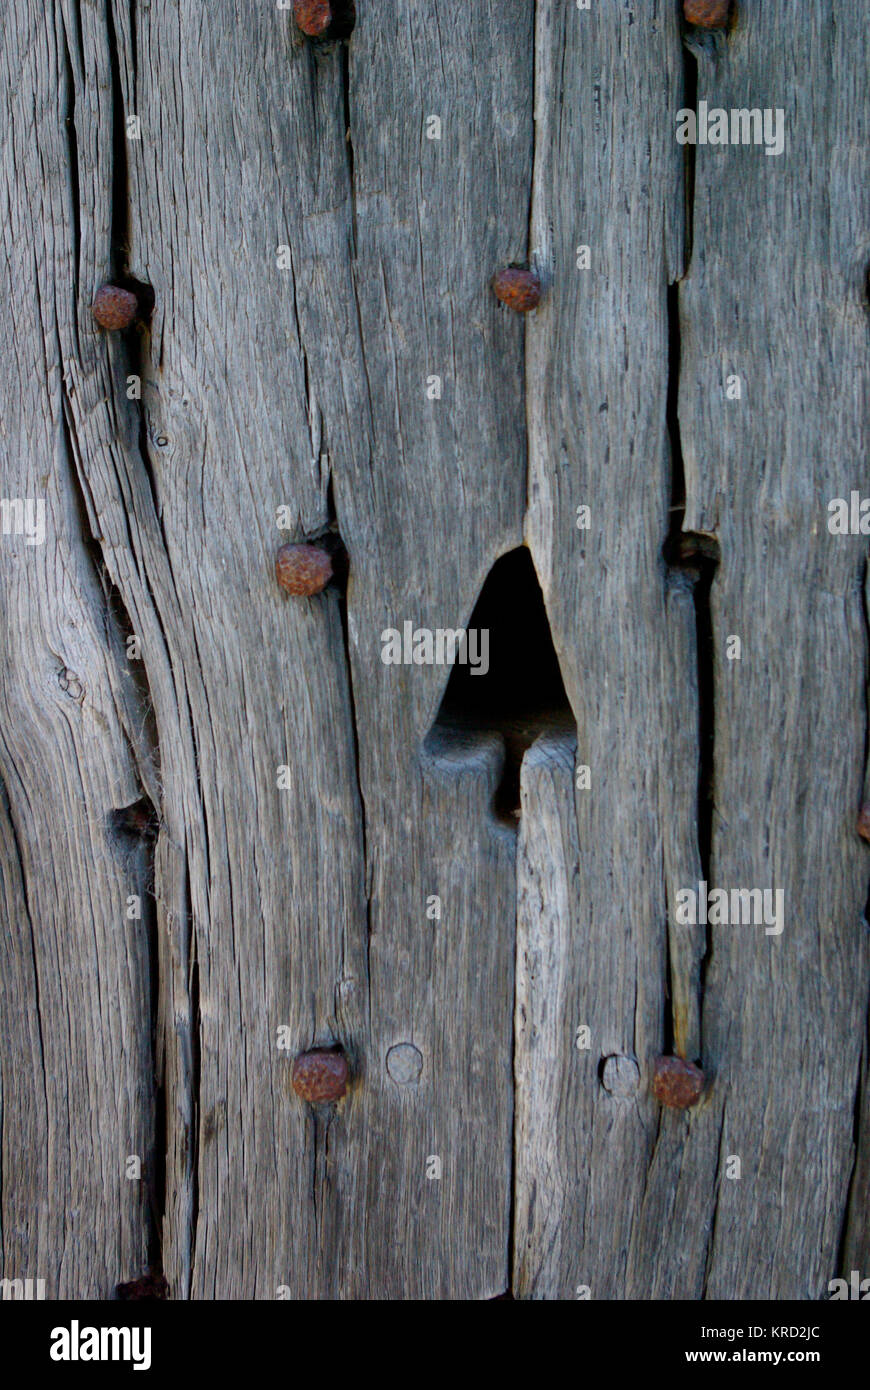 Detailed Close Up Of Wood With Iron Nails And An Arrow Shaped Hole